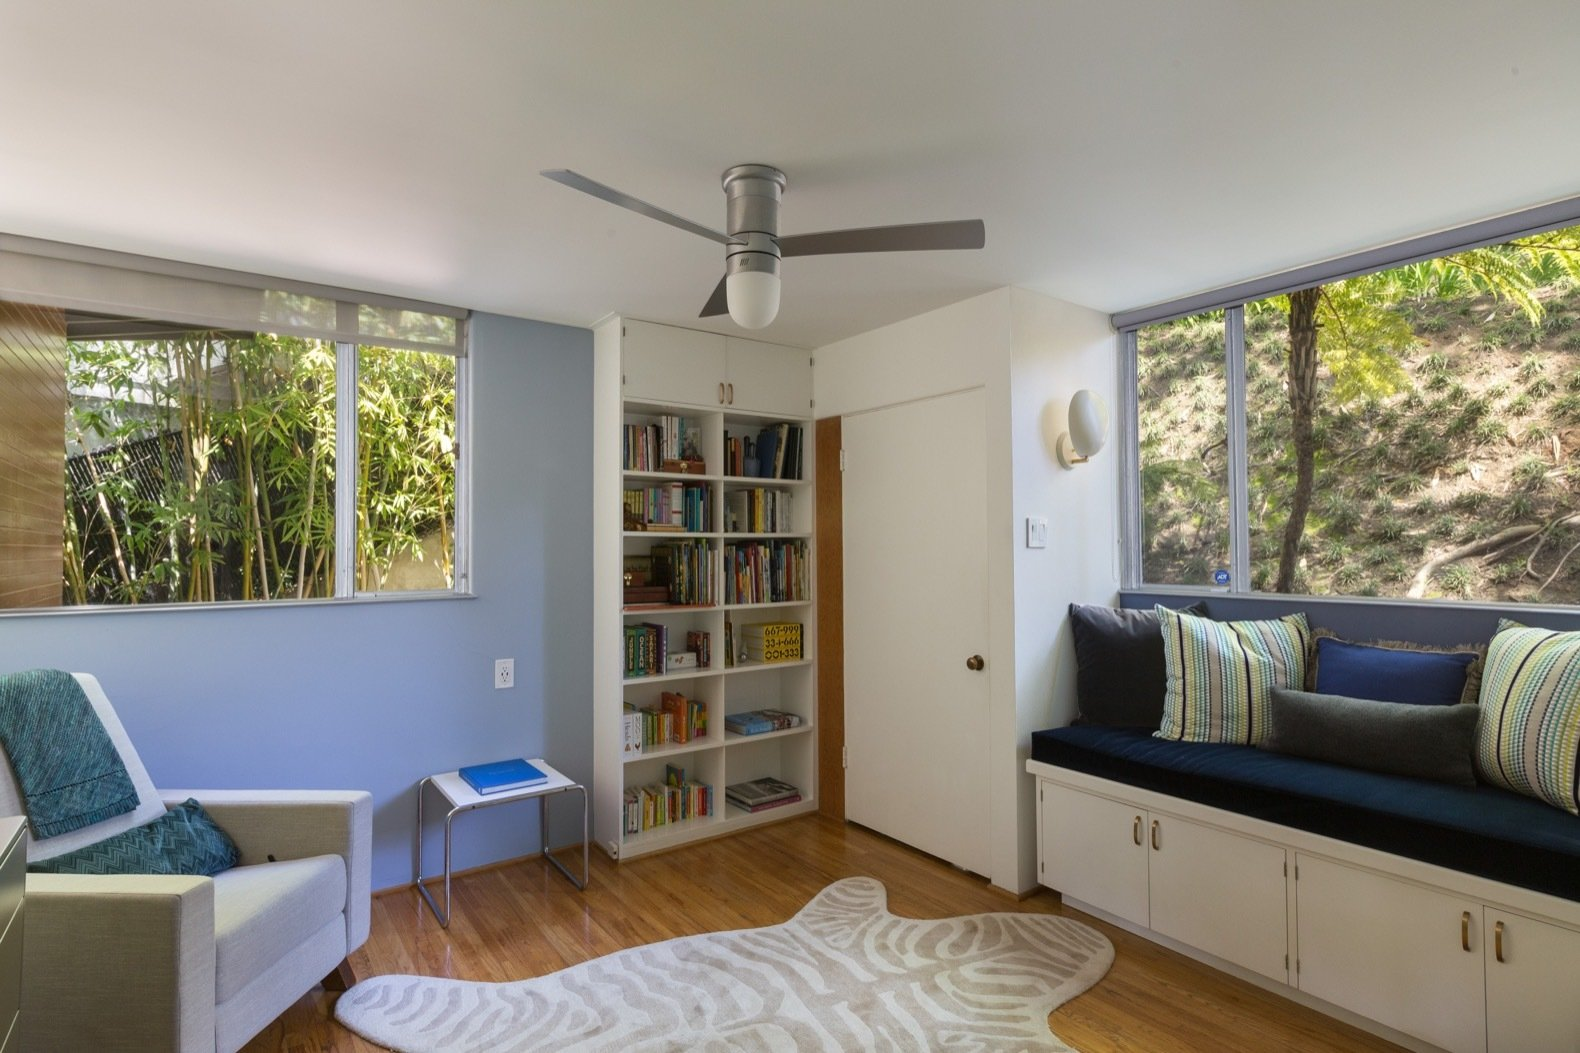 Bedroom, Chair, Storage, Ceiling Lighting, Medium Hardwood Floor, Bookcase, Rug Floor, Wall Lighting, and Bench Pale blue hues—repeated elsewhere in the home—stay true to Neutra's color palette.  Photo 10 of 15 in Calling All Richard Neutra Fans—His Bonnet House in L.A. Hits the Market at $1.8M